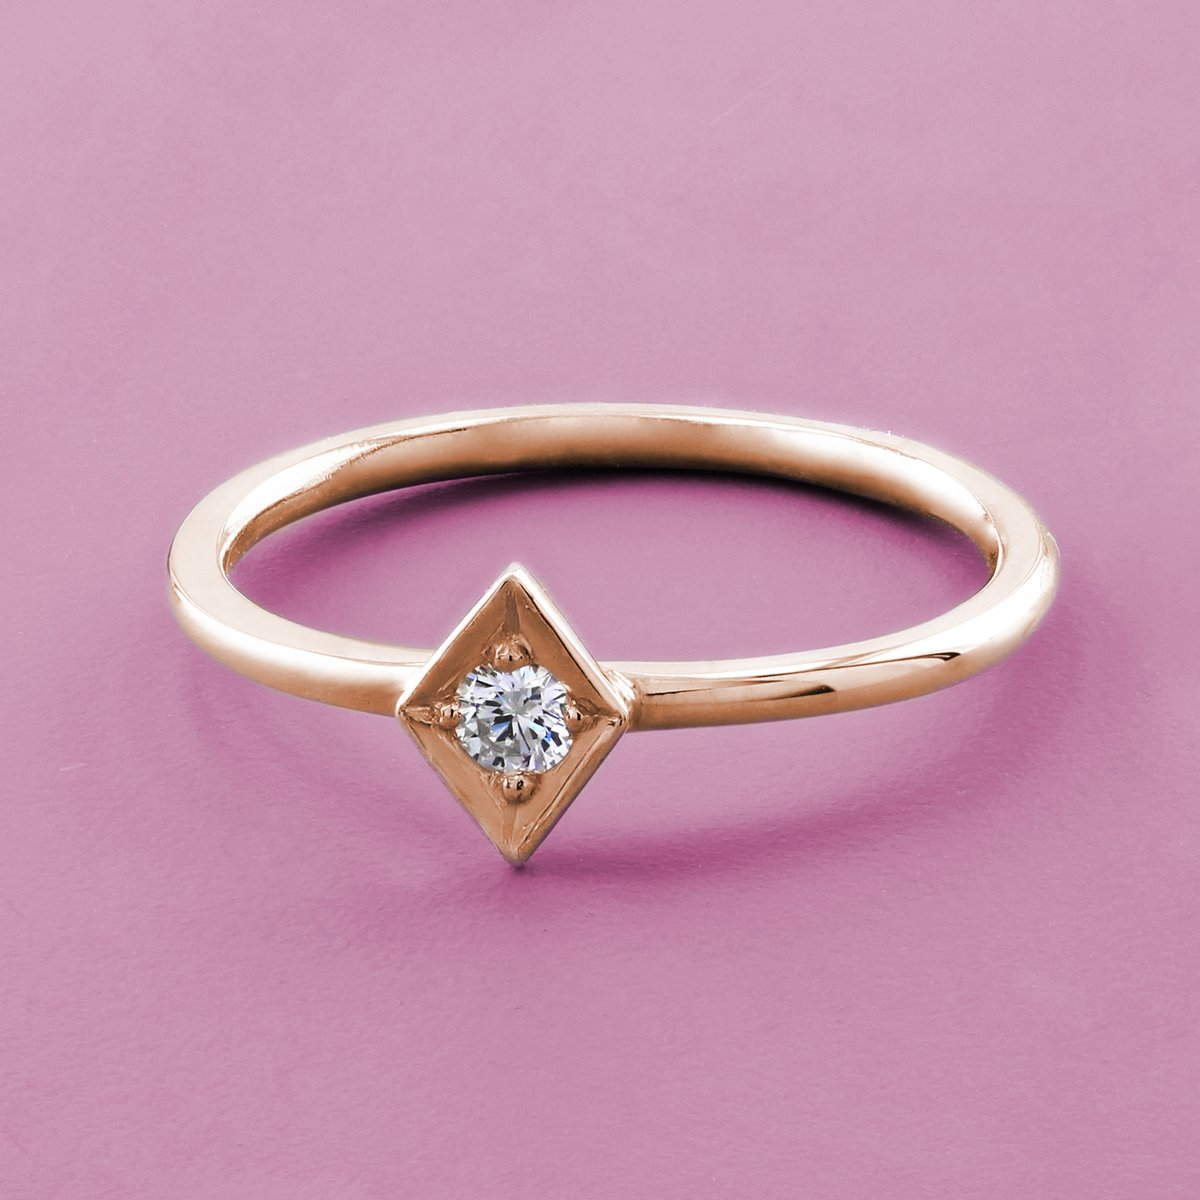 Posting out this pretty rose gold stacking ring this evening 💕  #jewellery #ring #lilycollection #lily #rosegold #18ct #diamond #diamondjewellery #jewelry #etsy #roundbrilliantcut #love #smallbusiness #sparkle #instalove